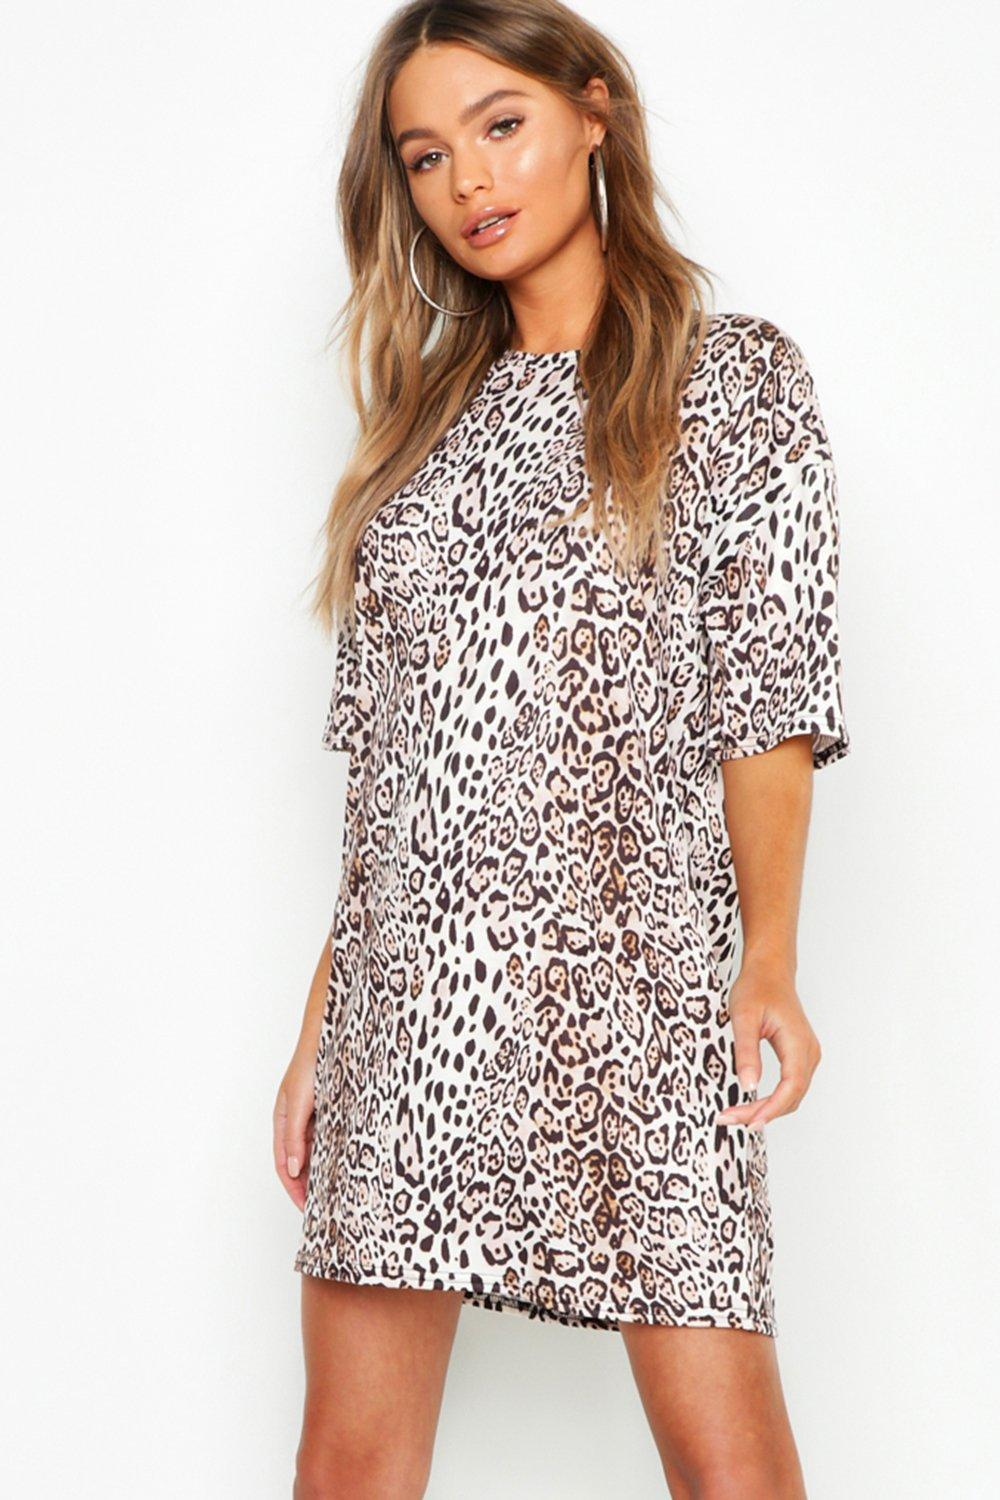 057fb62ac Womens Brown Leopard Print Oversized T-Shirt Dress. Hover to zoom